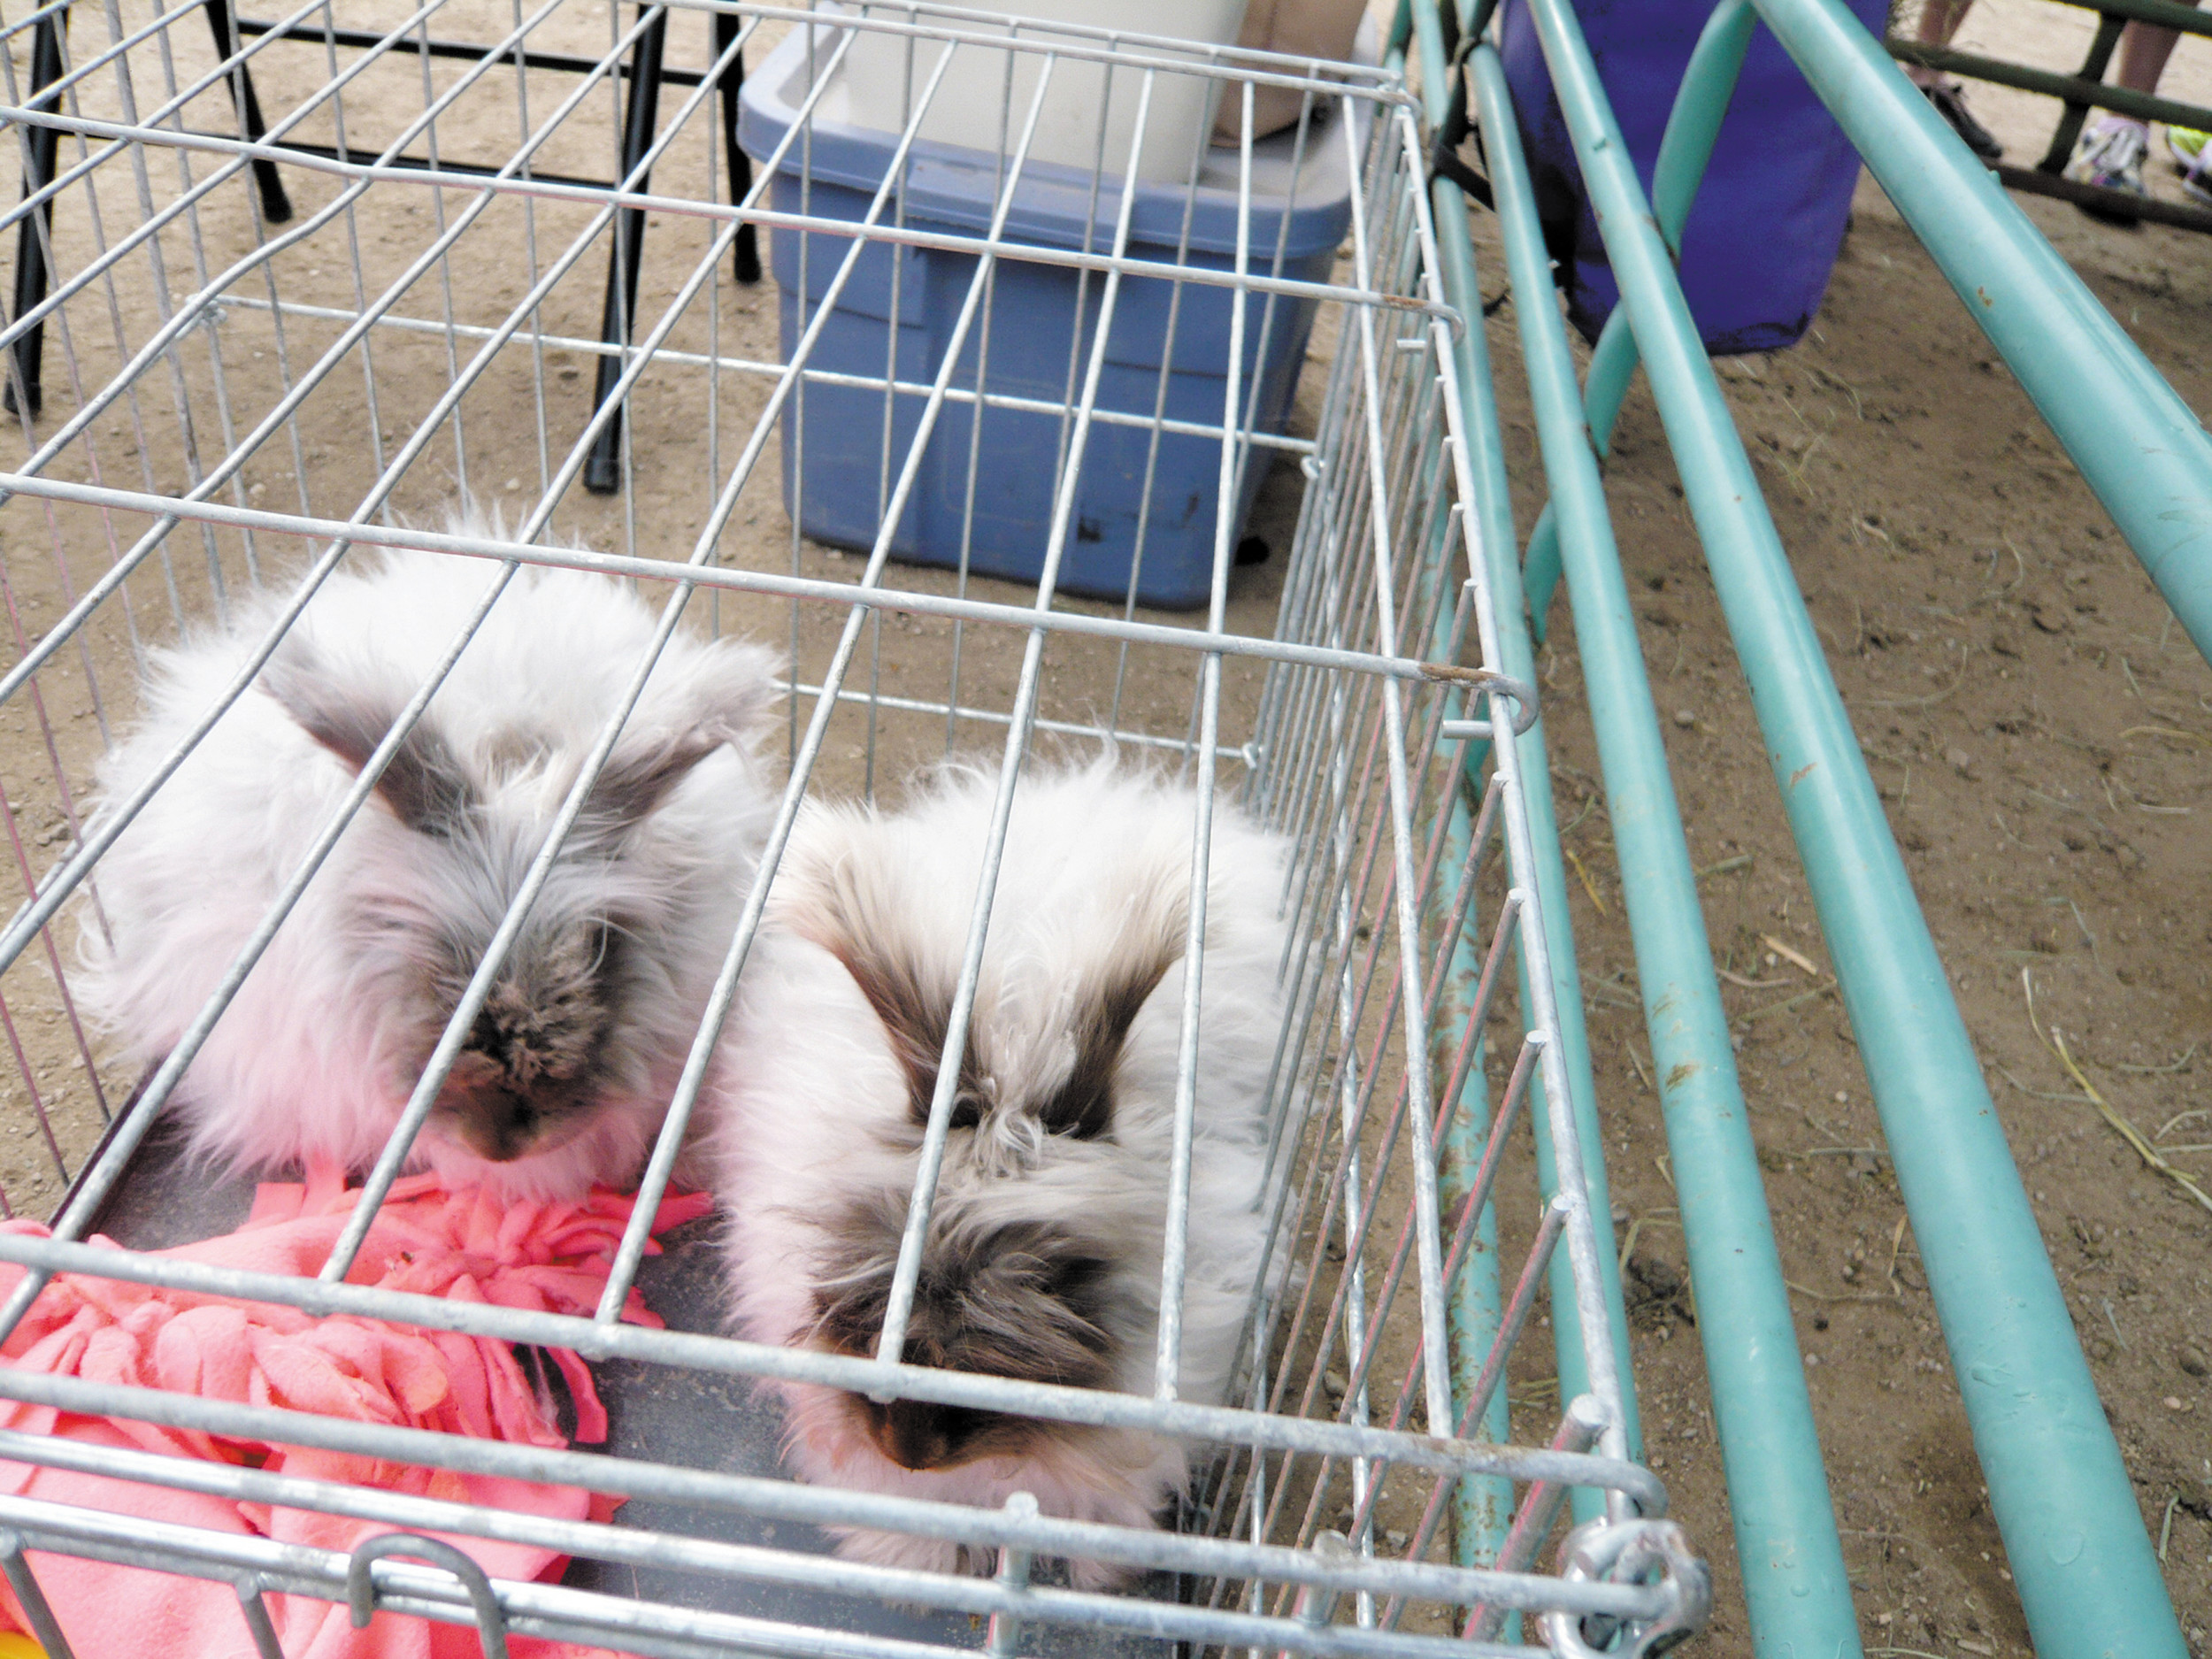 Angora Rabbits from LaZy B Acres in Bennett were guest attractions at the Littleton Museum's Fiber Festival on April 12.